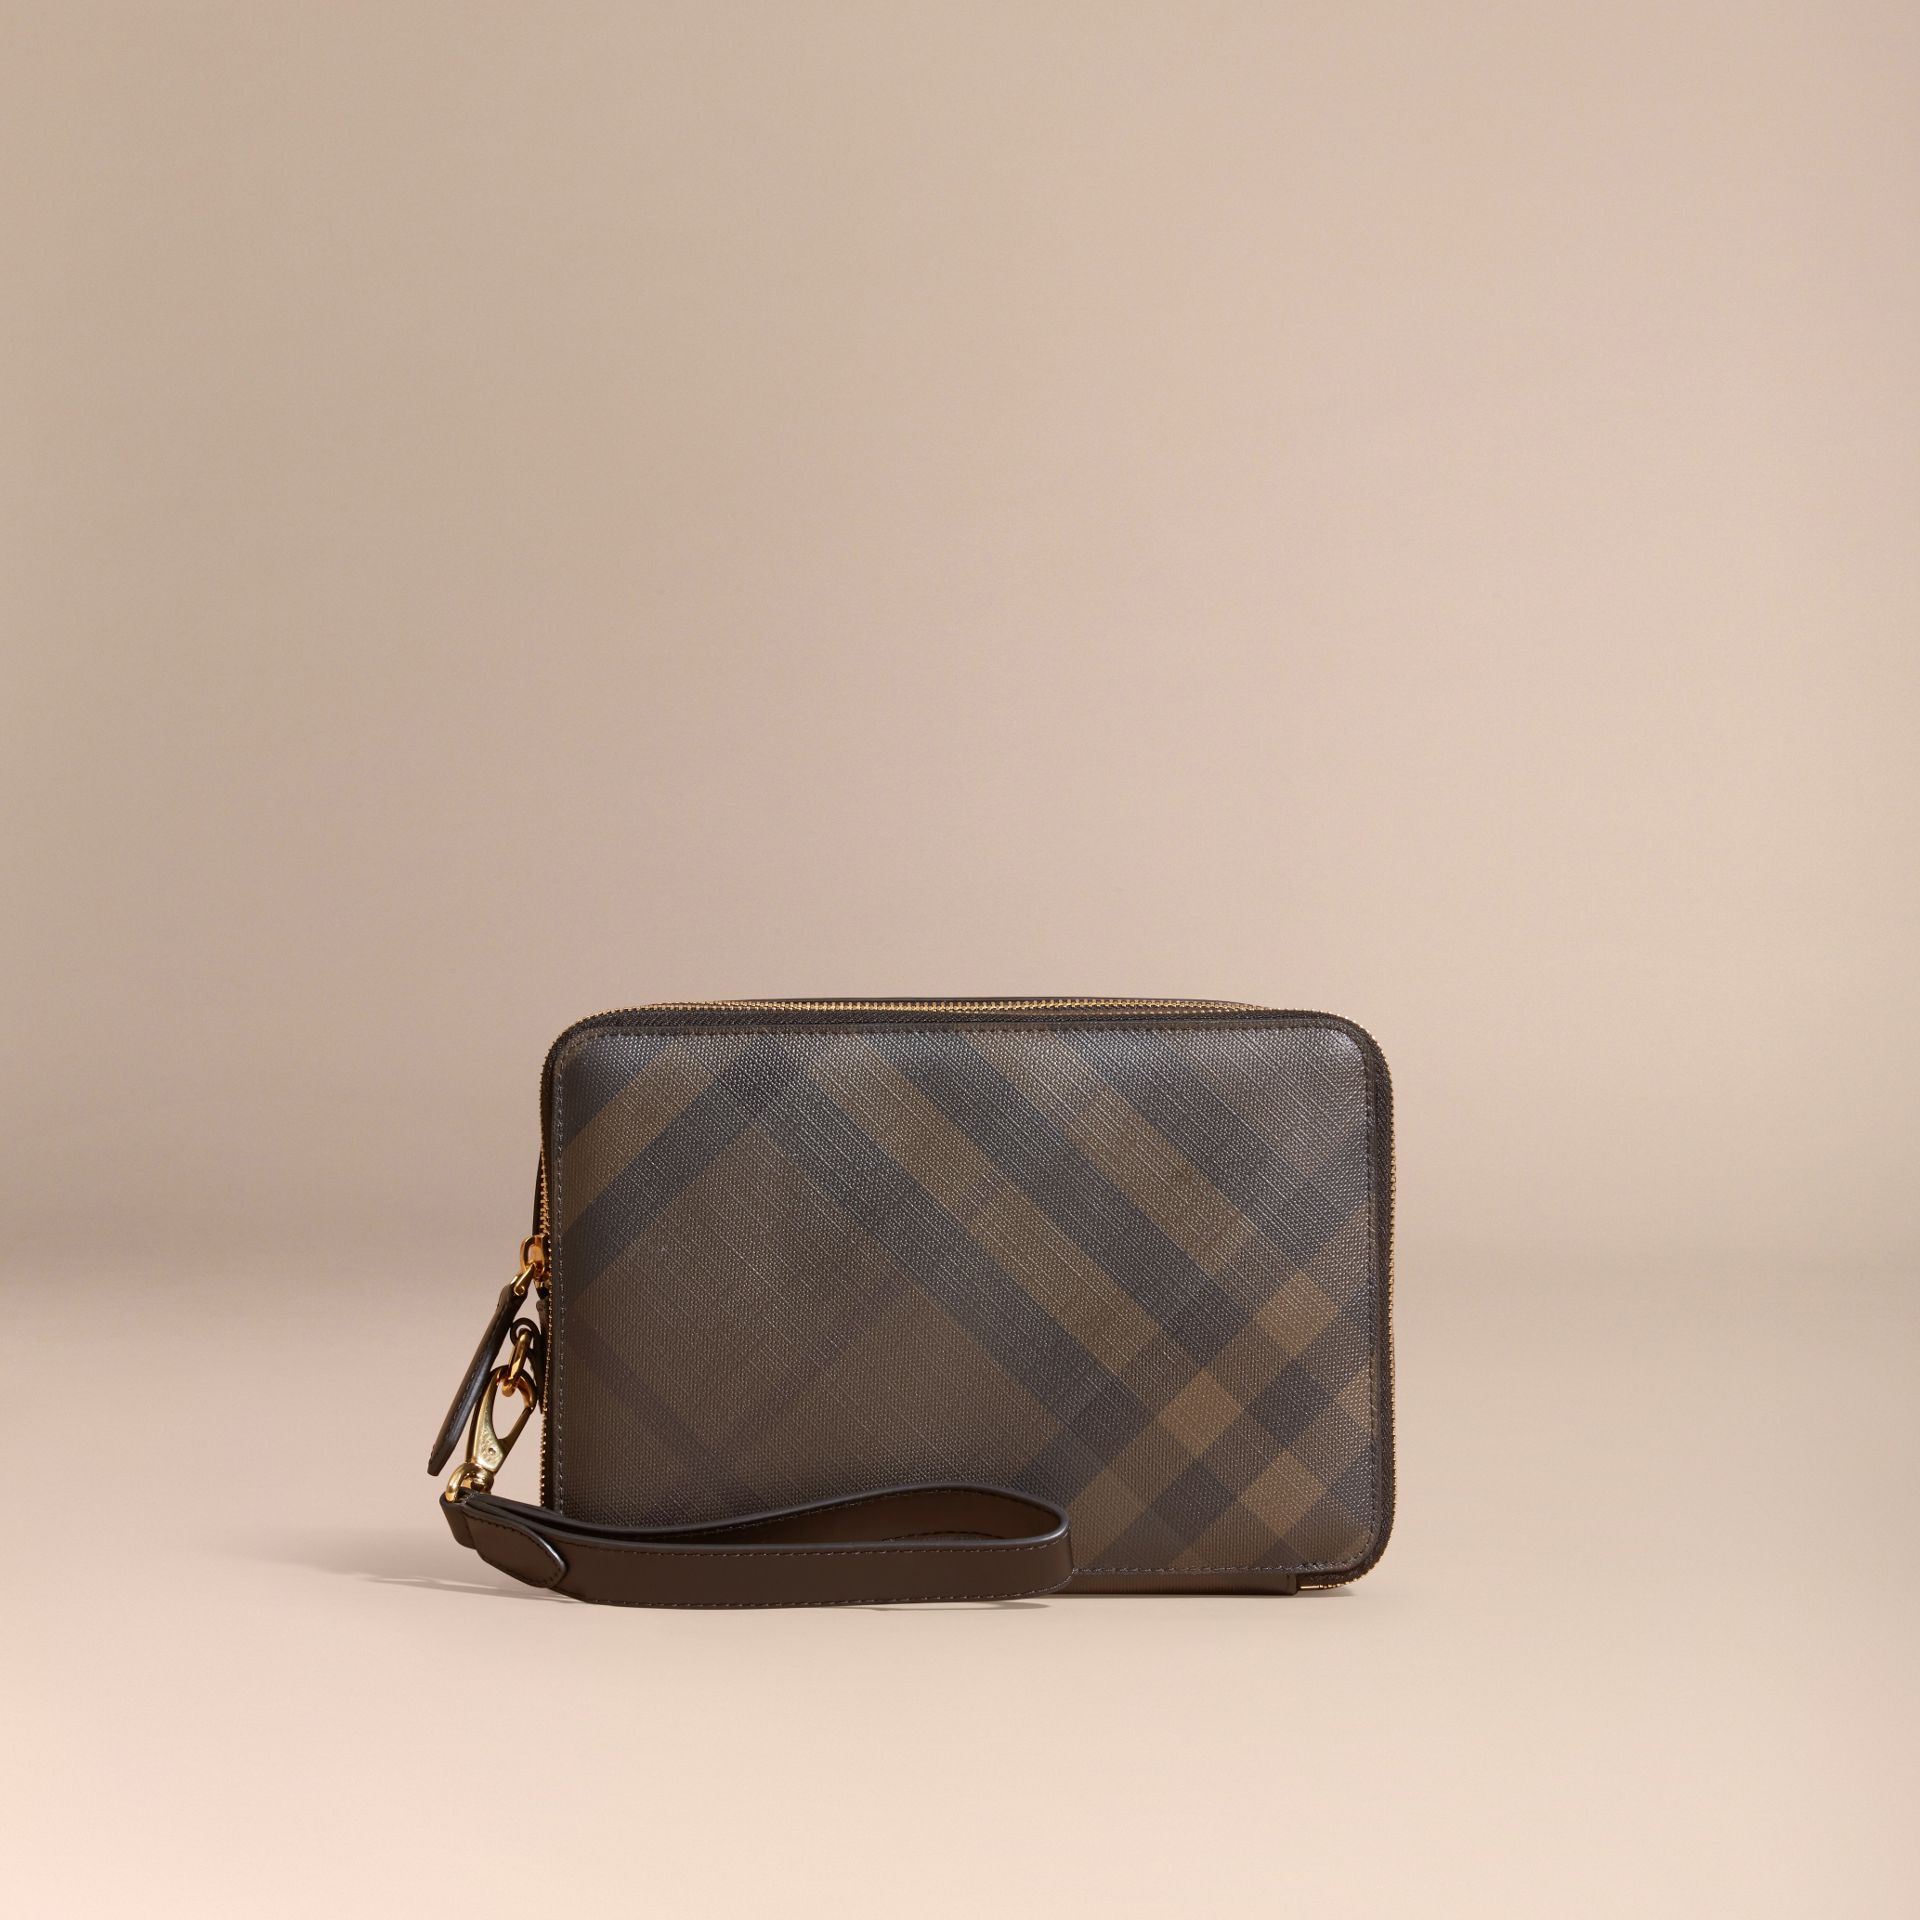 Leather-trimmed London Check Pouch in Chocolate/black - Men | Burberry - gallery image 6